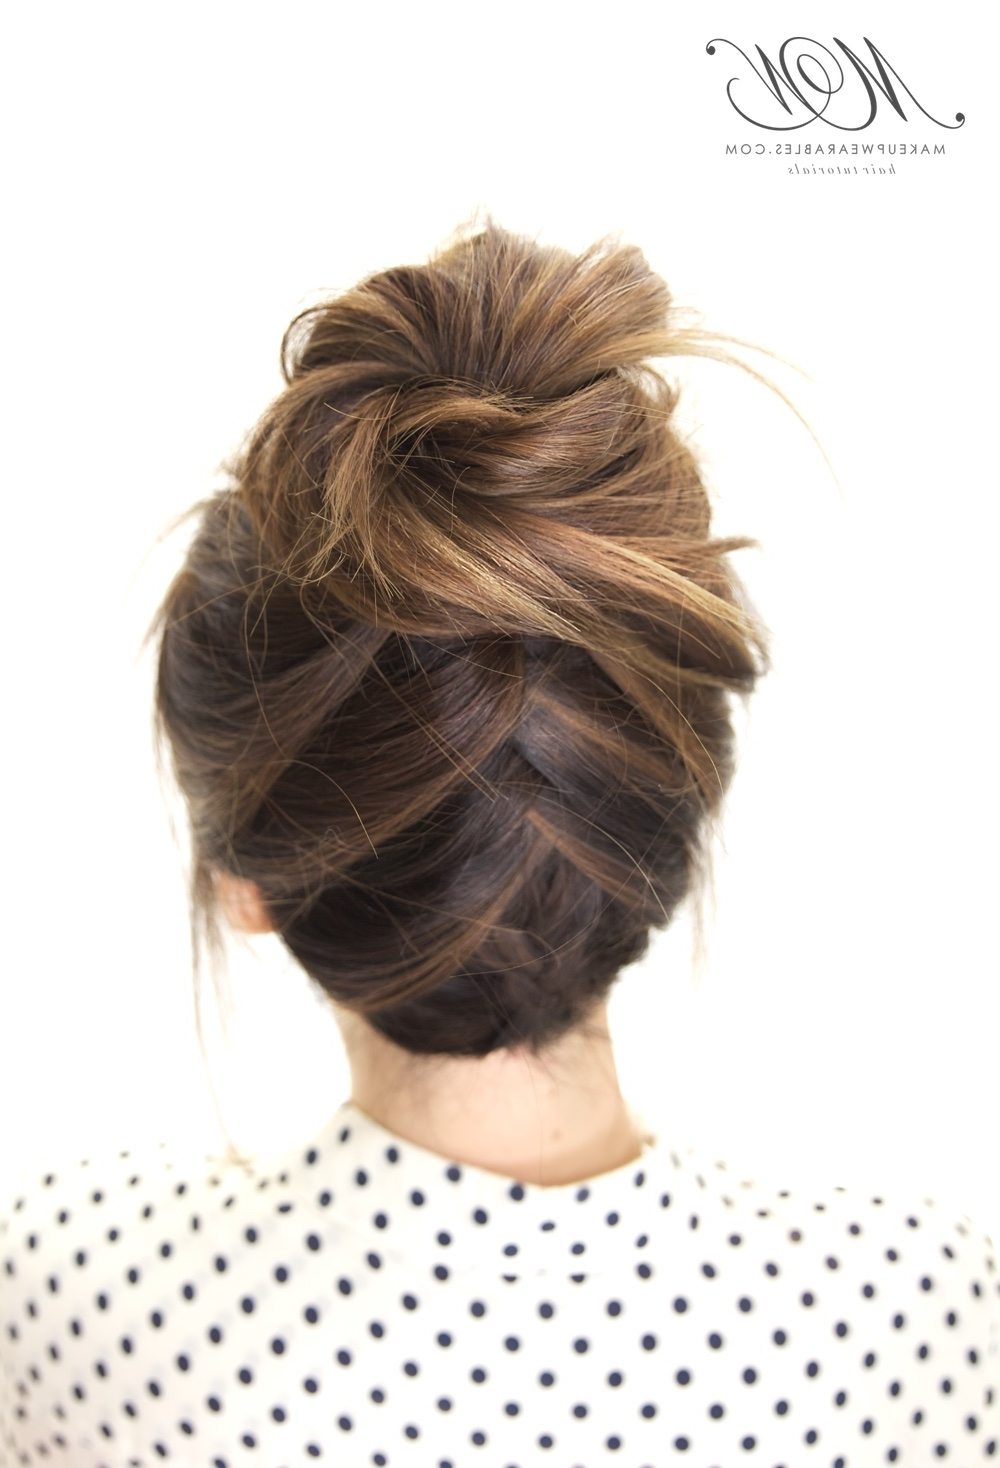 Hairstyle Tutorial (View 12 of 15)